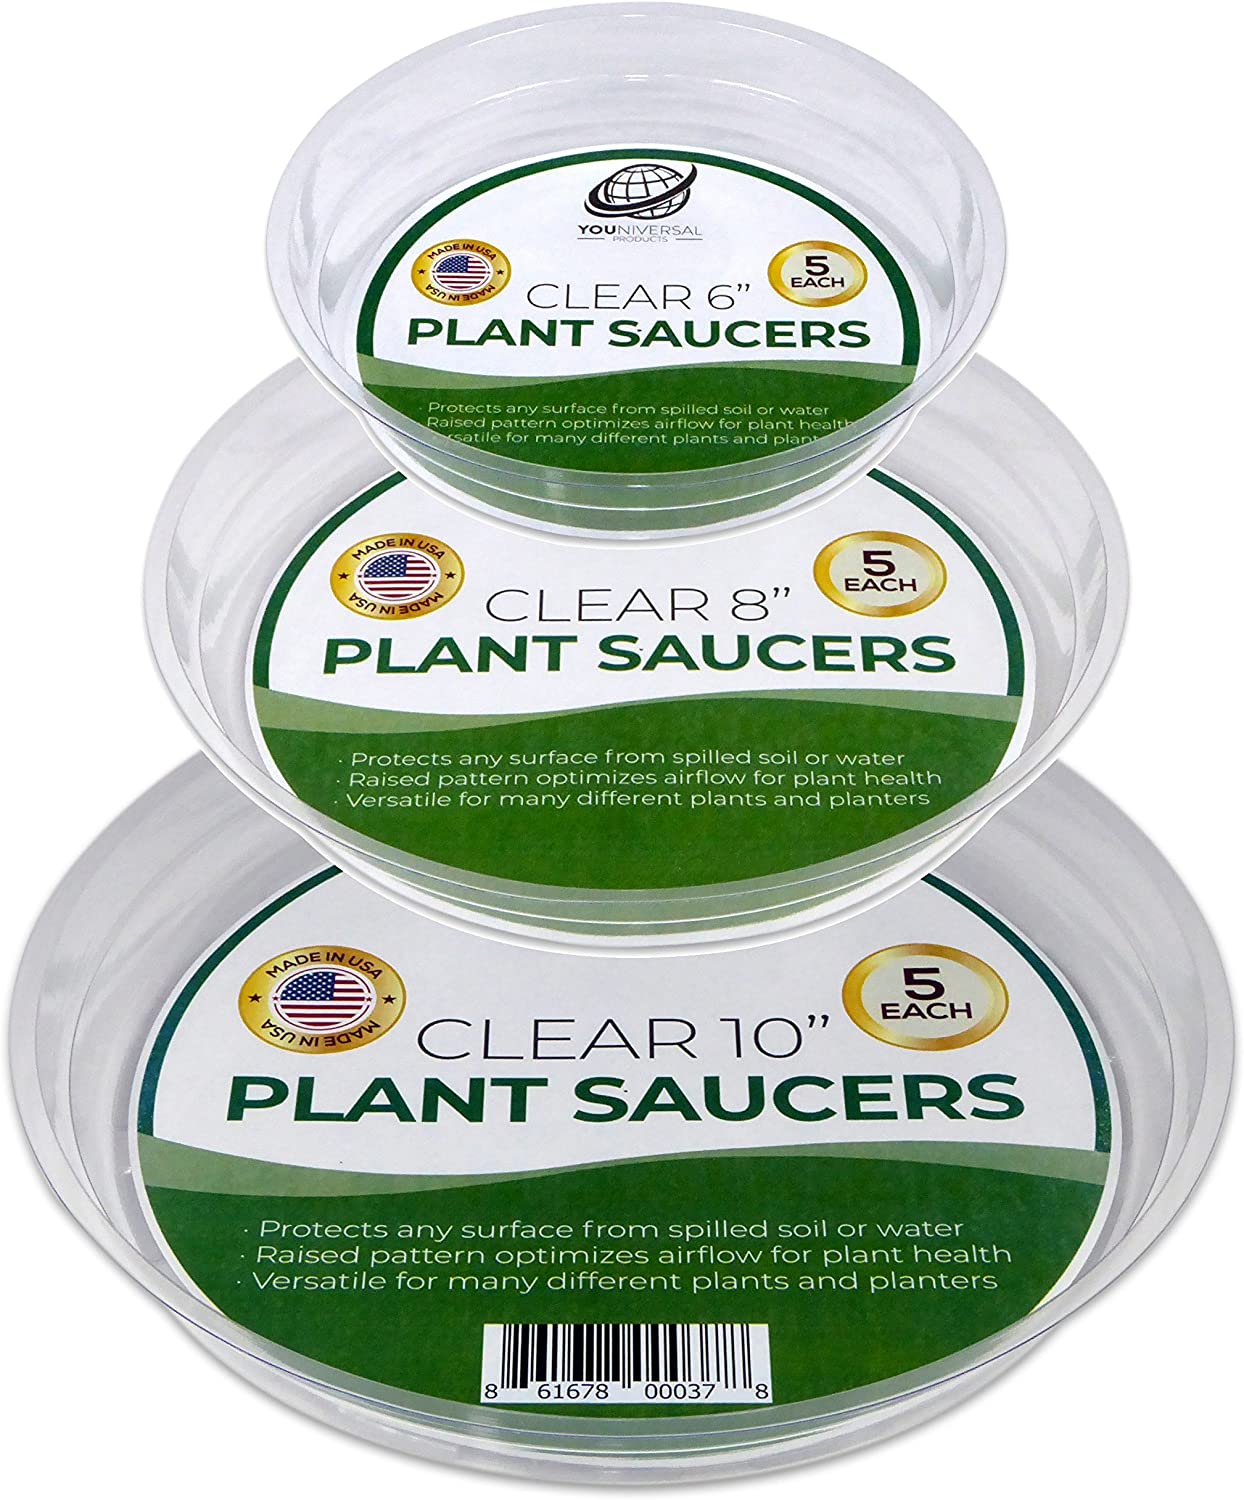 YOUniversal Products 15 Pack of 6, 8, 10 Inch Clear Plant Saucer Drip Trays : Garden & Outdoor